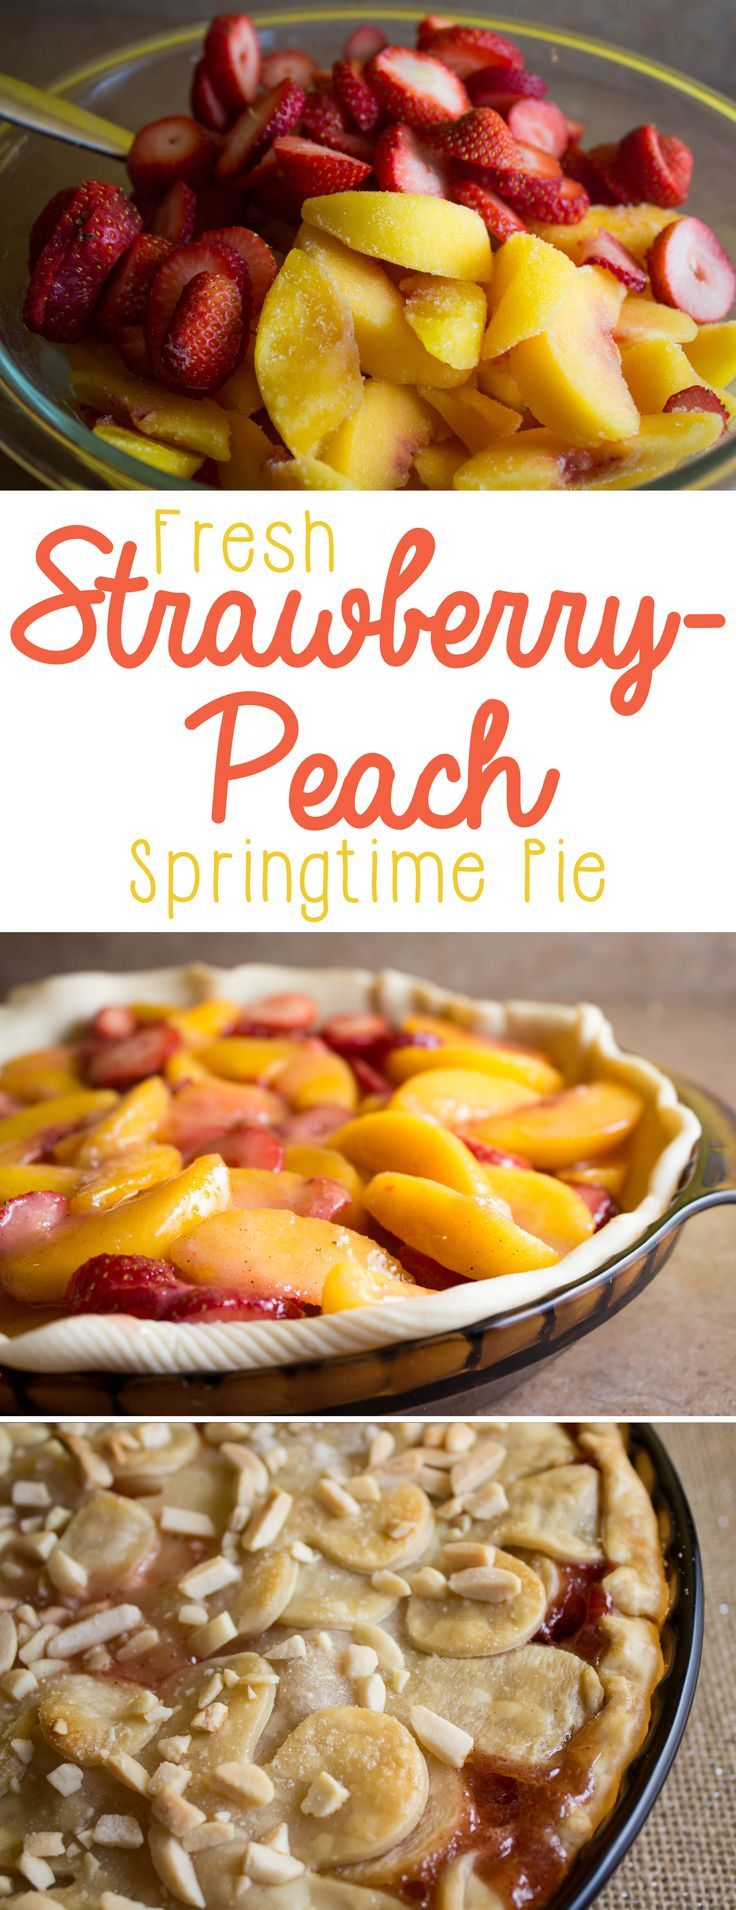 This strawberry peach pie is so heavenly... it's perfect for springtime! If you need a potluck dessert or the perfect spring pie, you'll love this-- fresh strawberries marry beautiful juicy peaches inside of a flaky crust, with just the right hint of sugar. You'll make this pie recipe again and again!